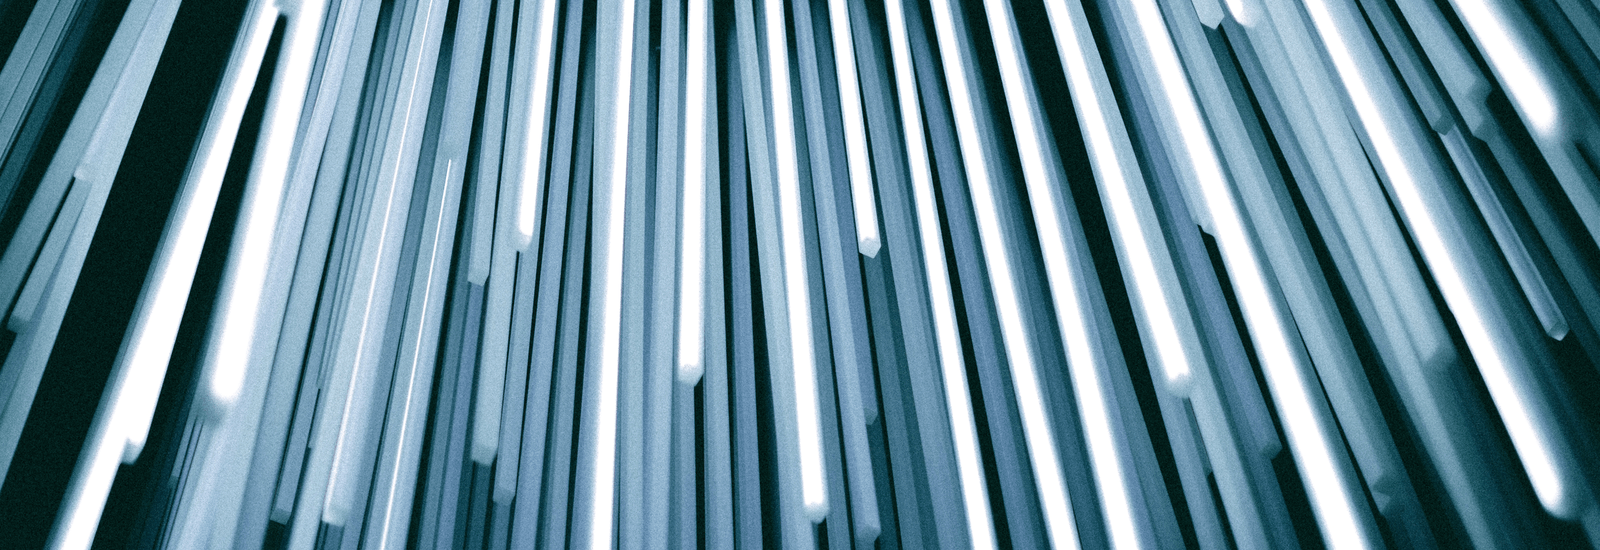 abstract image blue poles